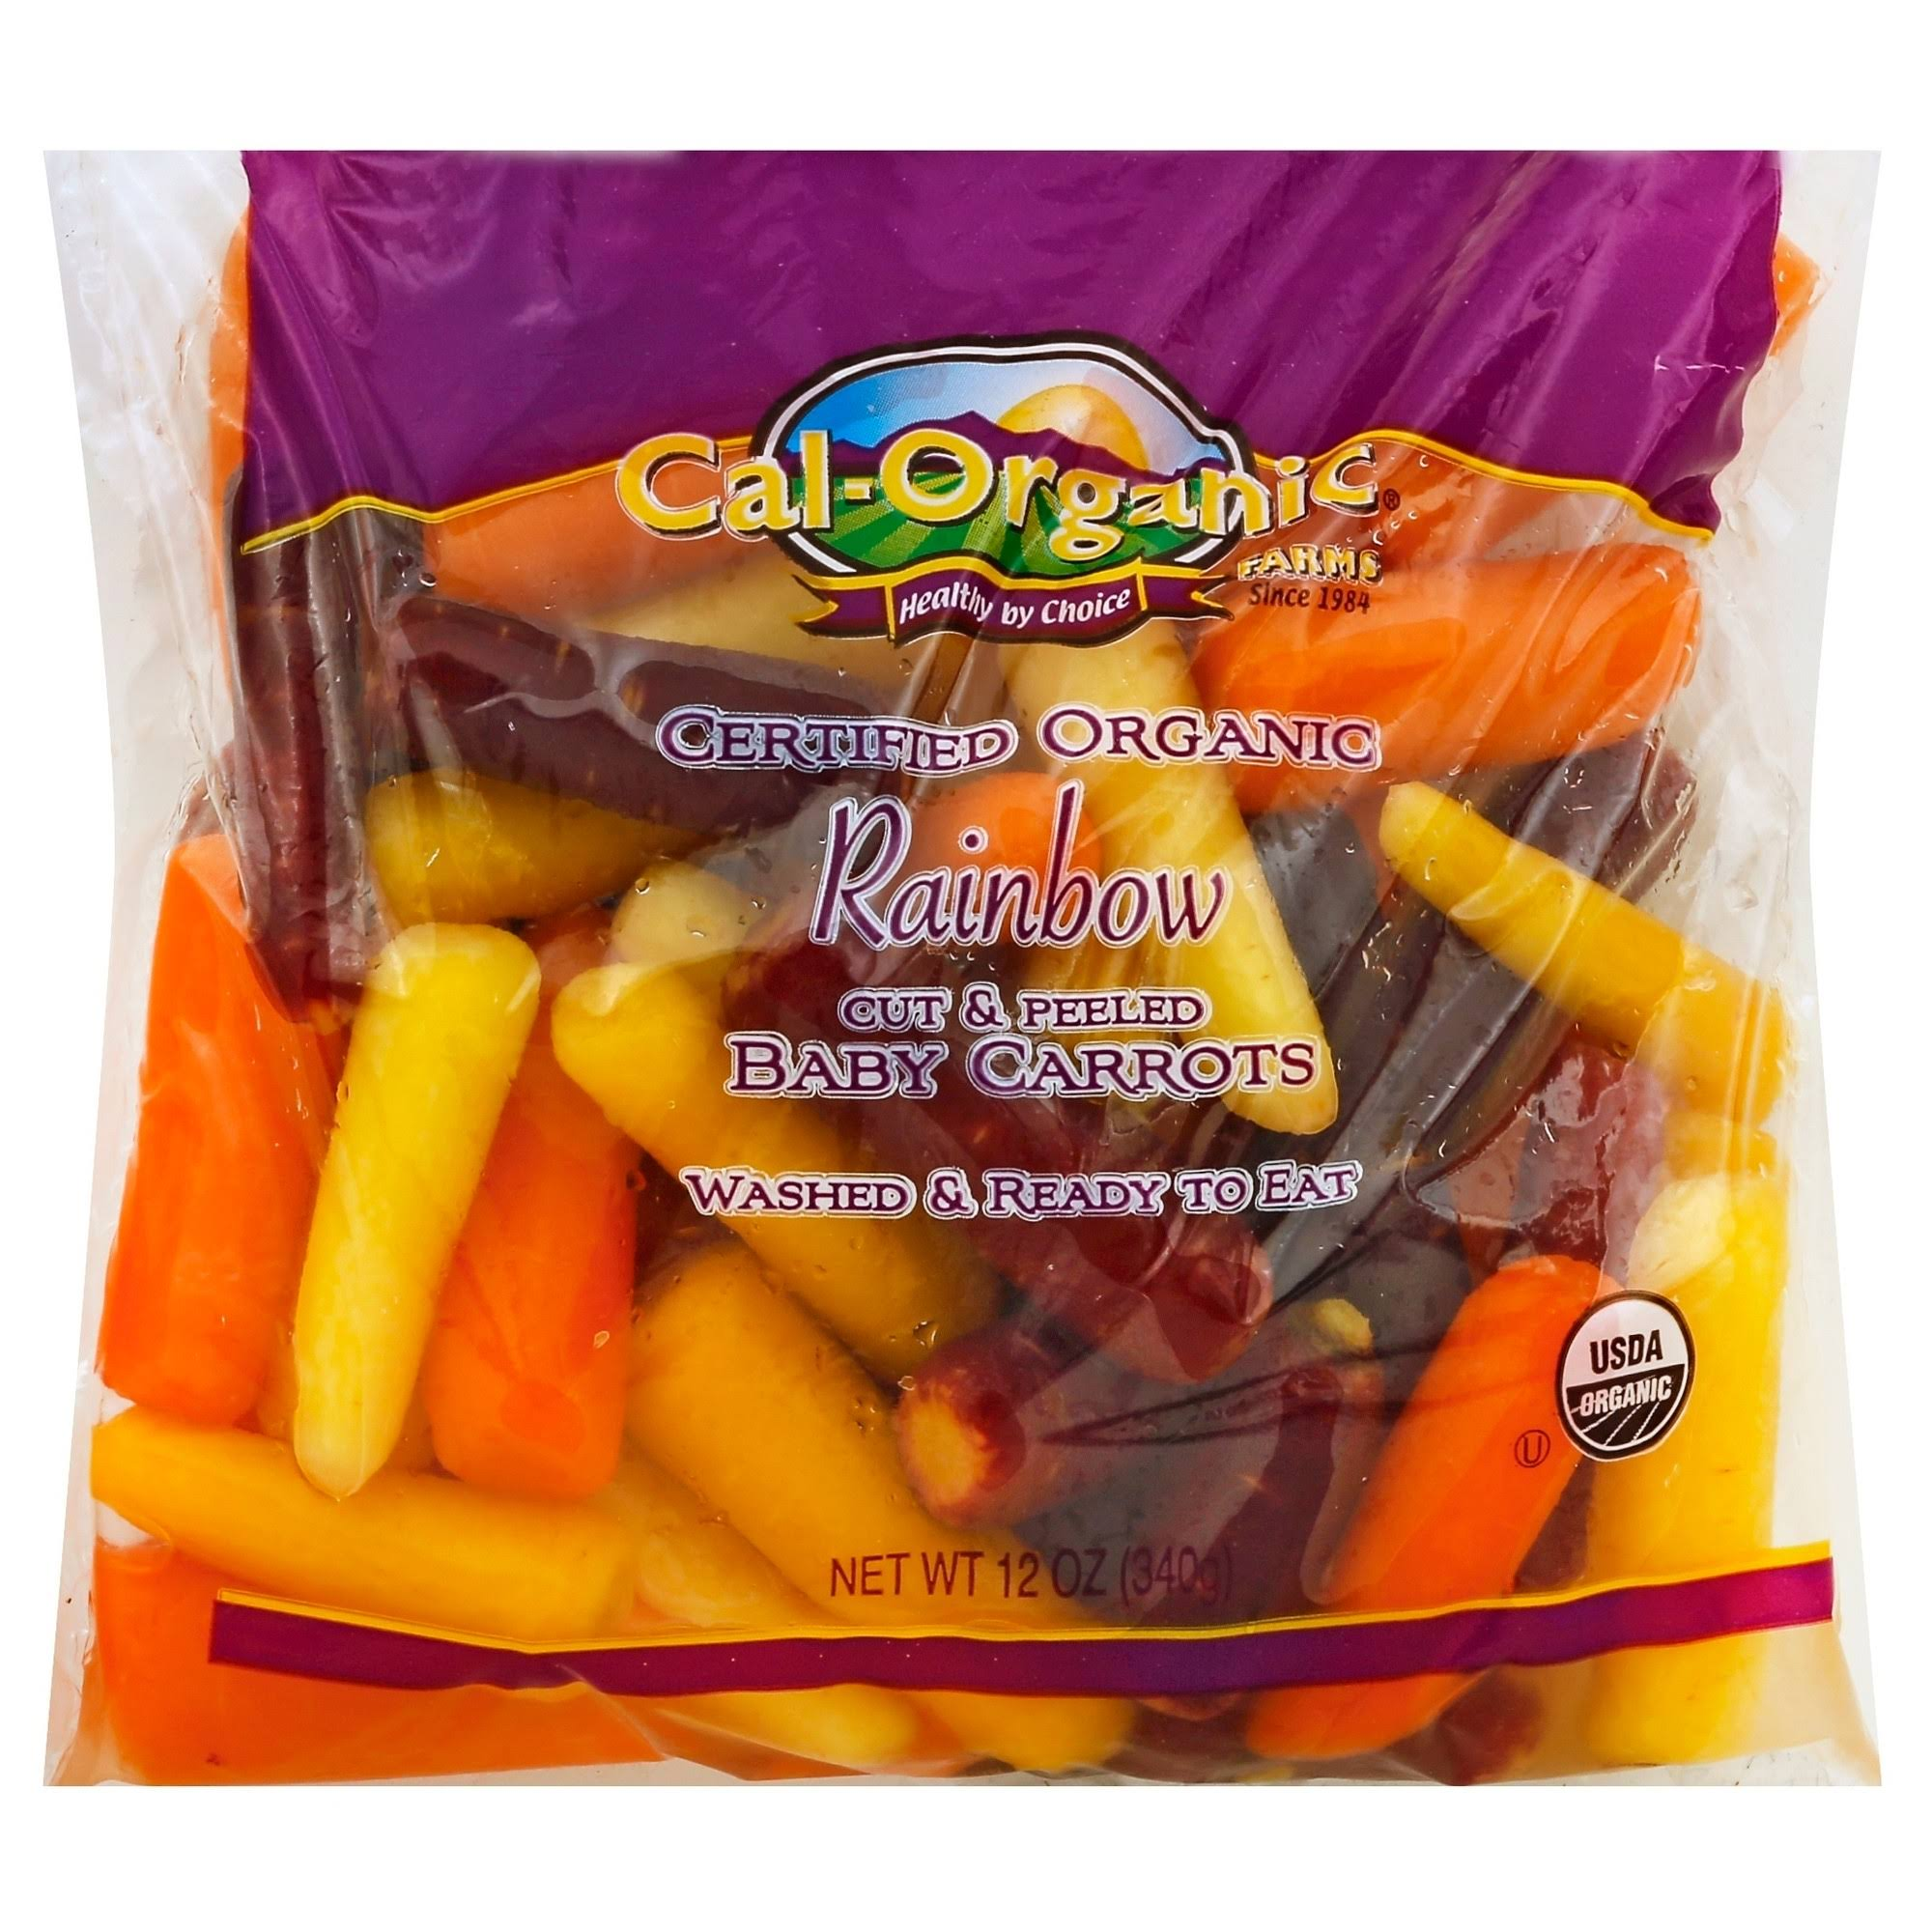 Cal Organic Farms Baby Carrots, Rainbow, Cut & Peeled - 12 oz